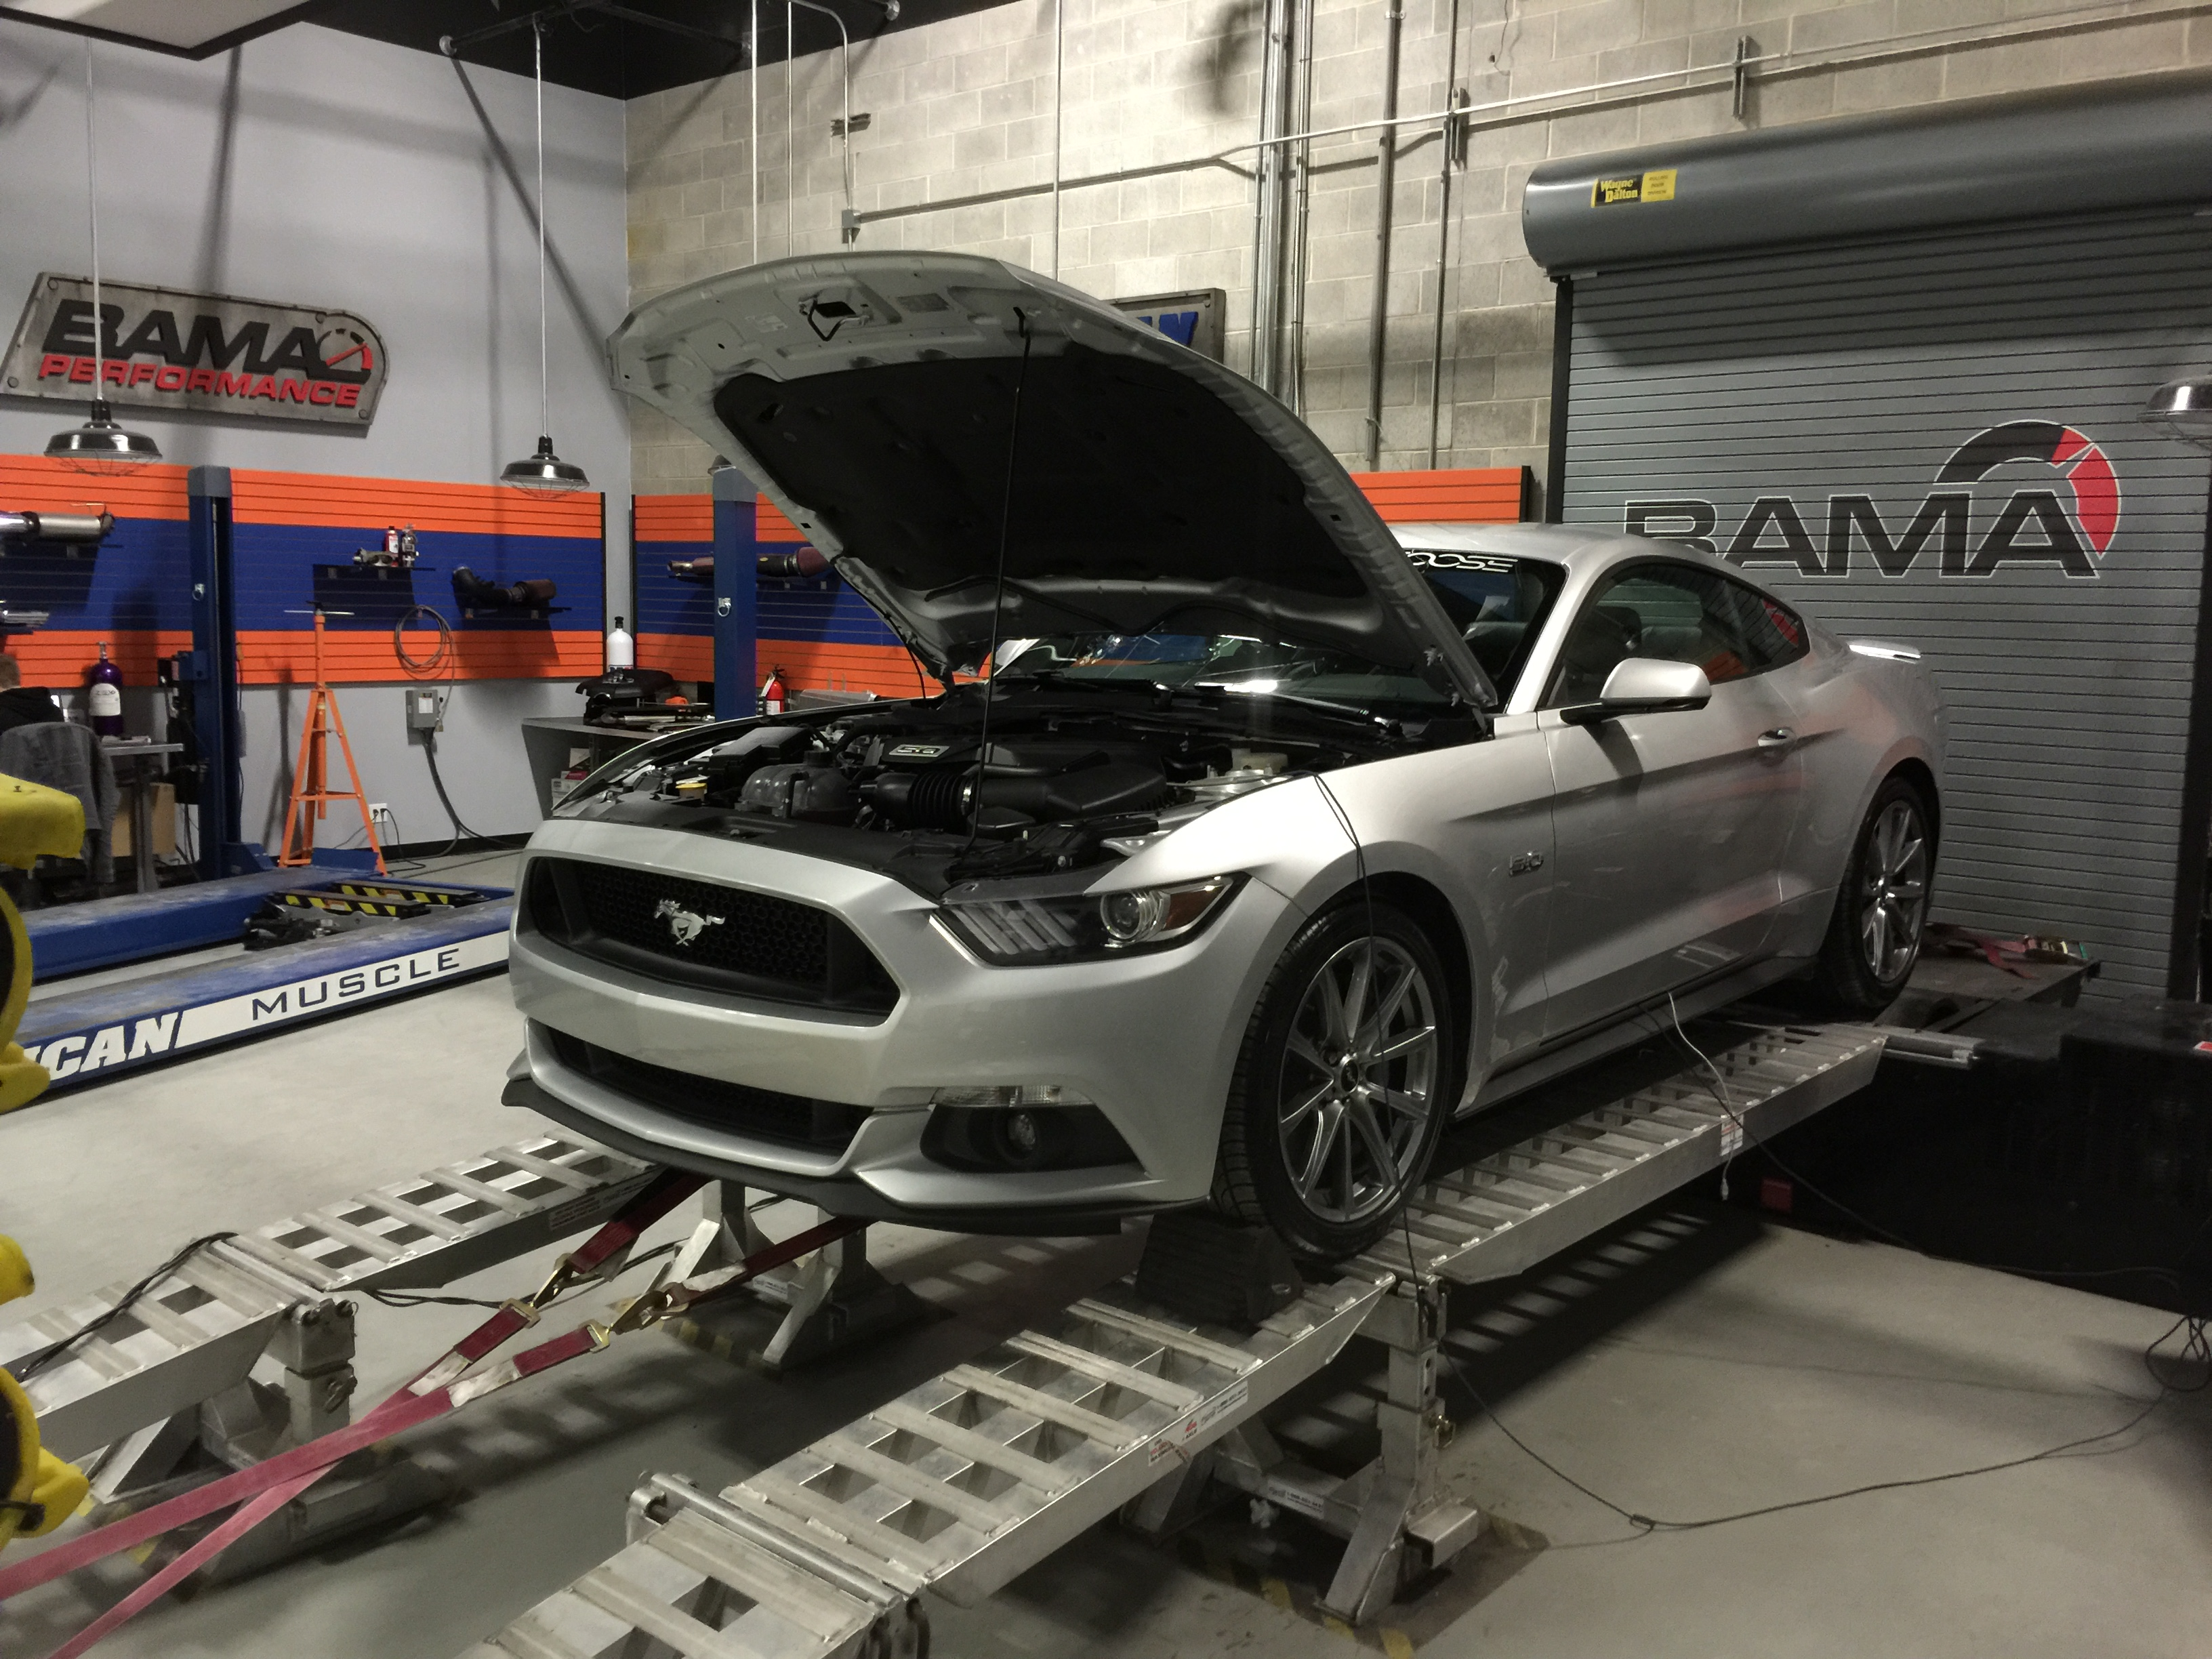 Tuning an Auto 2015 Mustang GT with Bama Performance V2 Tunes